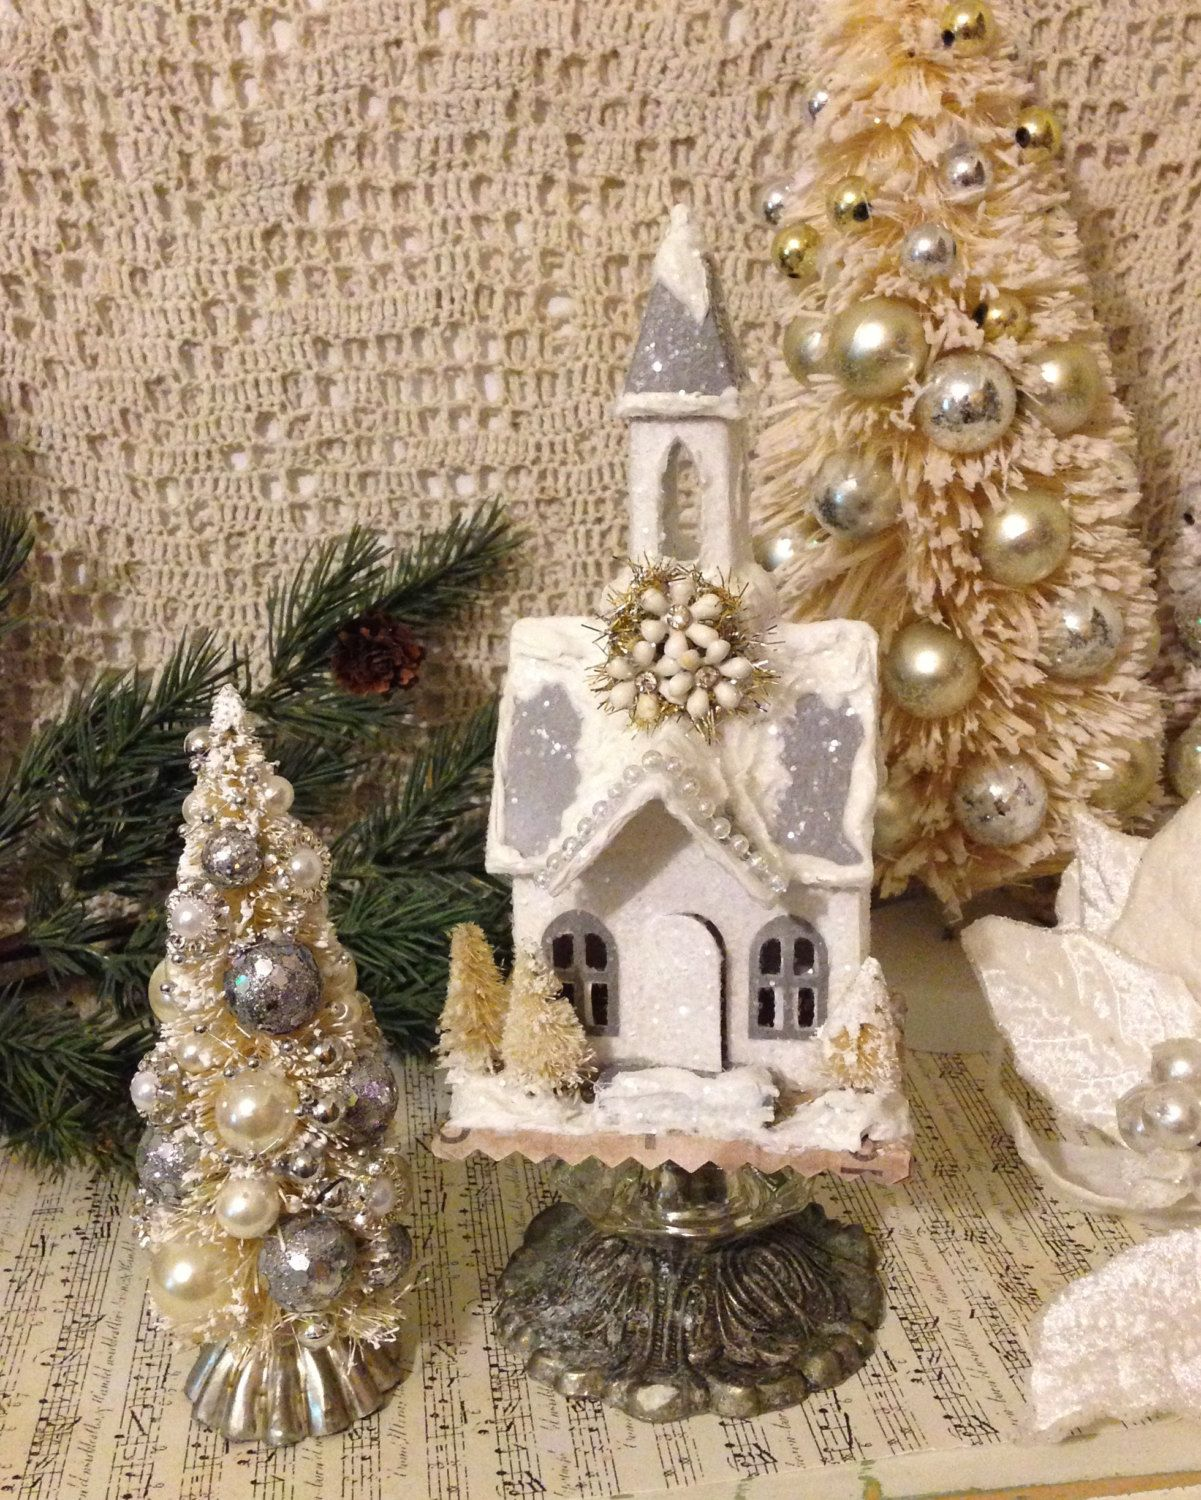 Silver Christmas Cottage Church~ Vintage Inspired,  Putz Village Church with Matching Bottlebrush Tree, Silver and White Holiday Decorations by ThePokeyPoodle on Etsy